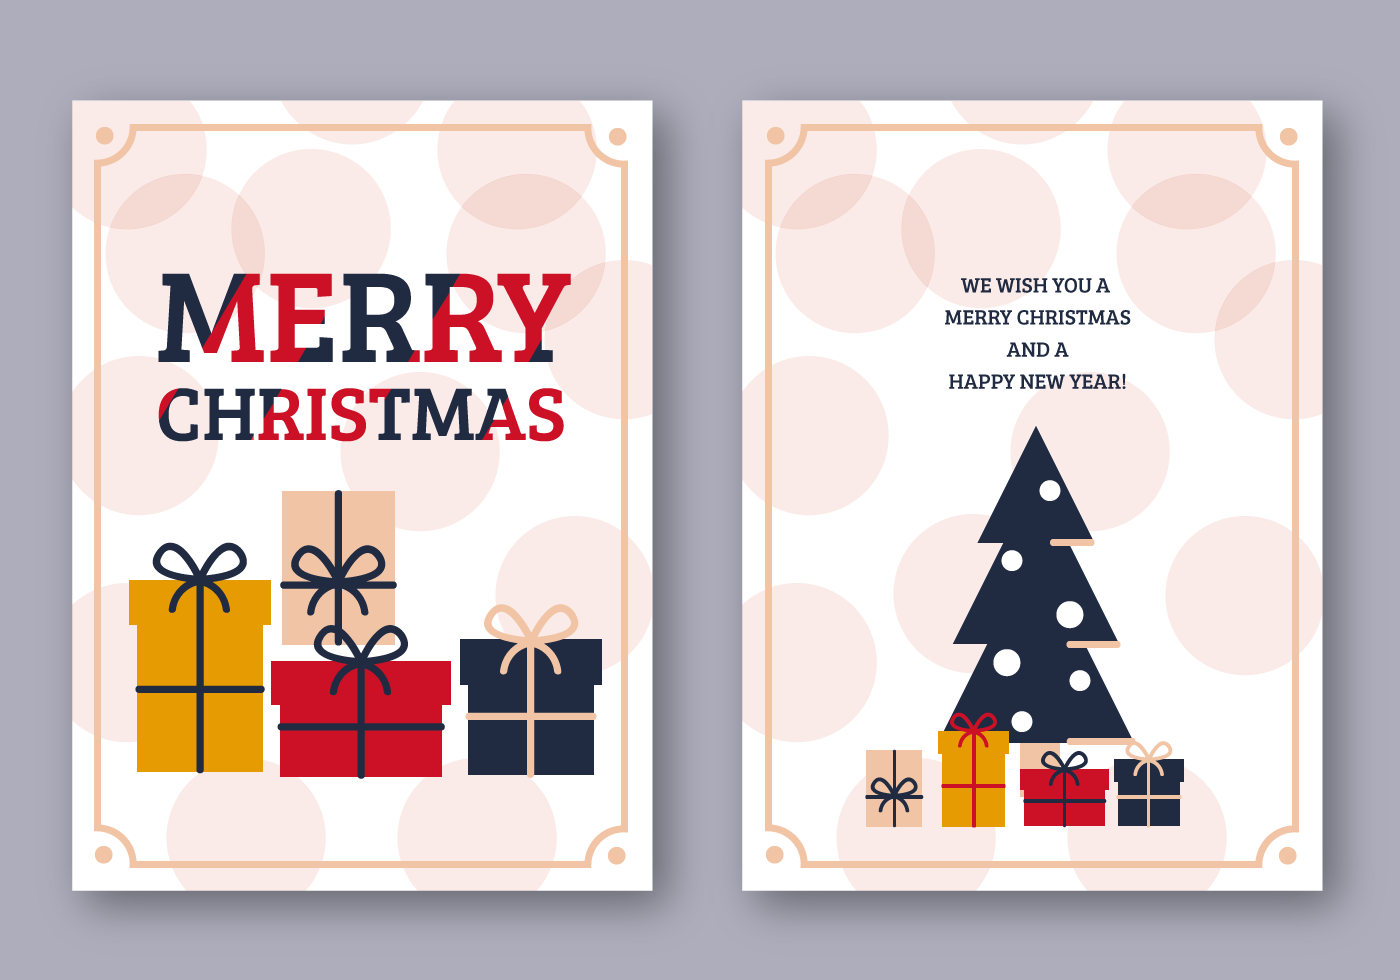 Free Merry Christmas Card - Download Free Vector Art, Stock Graphics ...